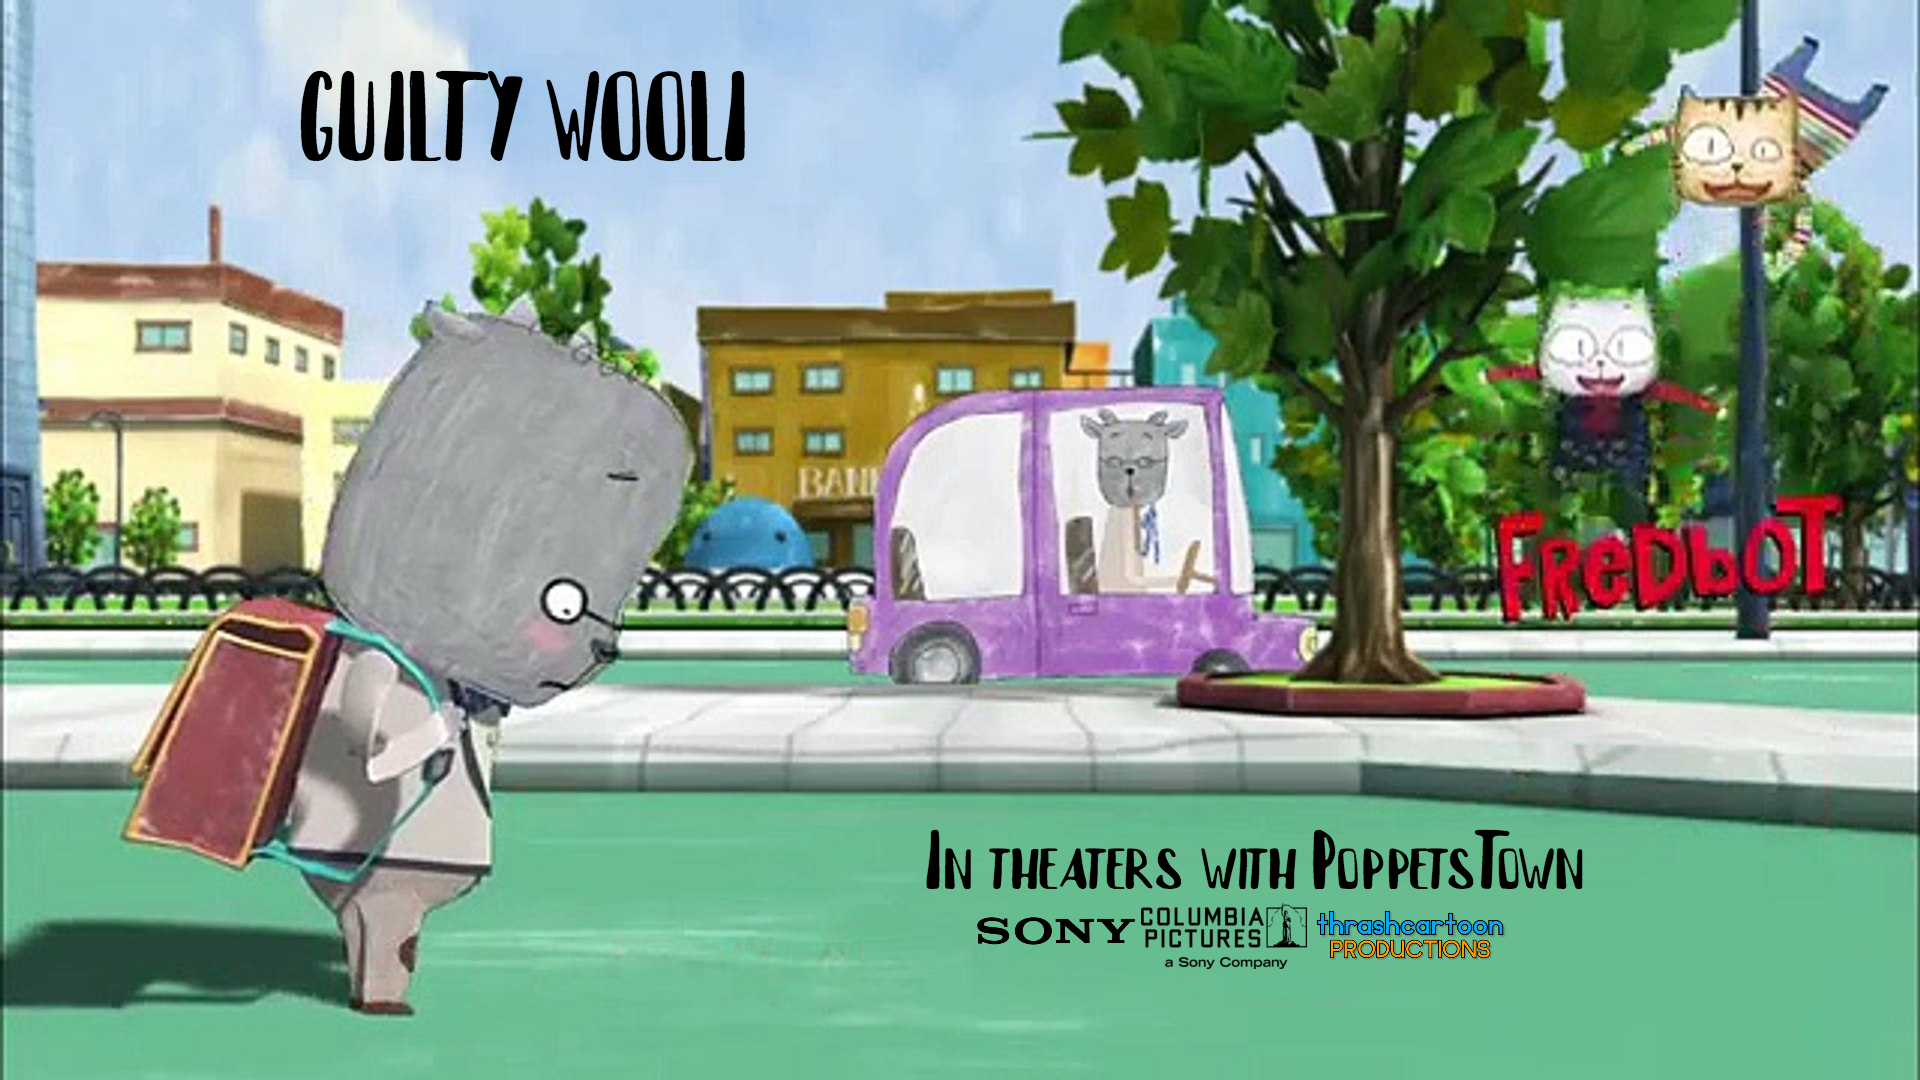 Guilty-Wooli-2021-mini-movie-poster.png